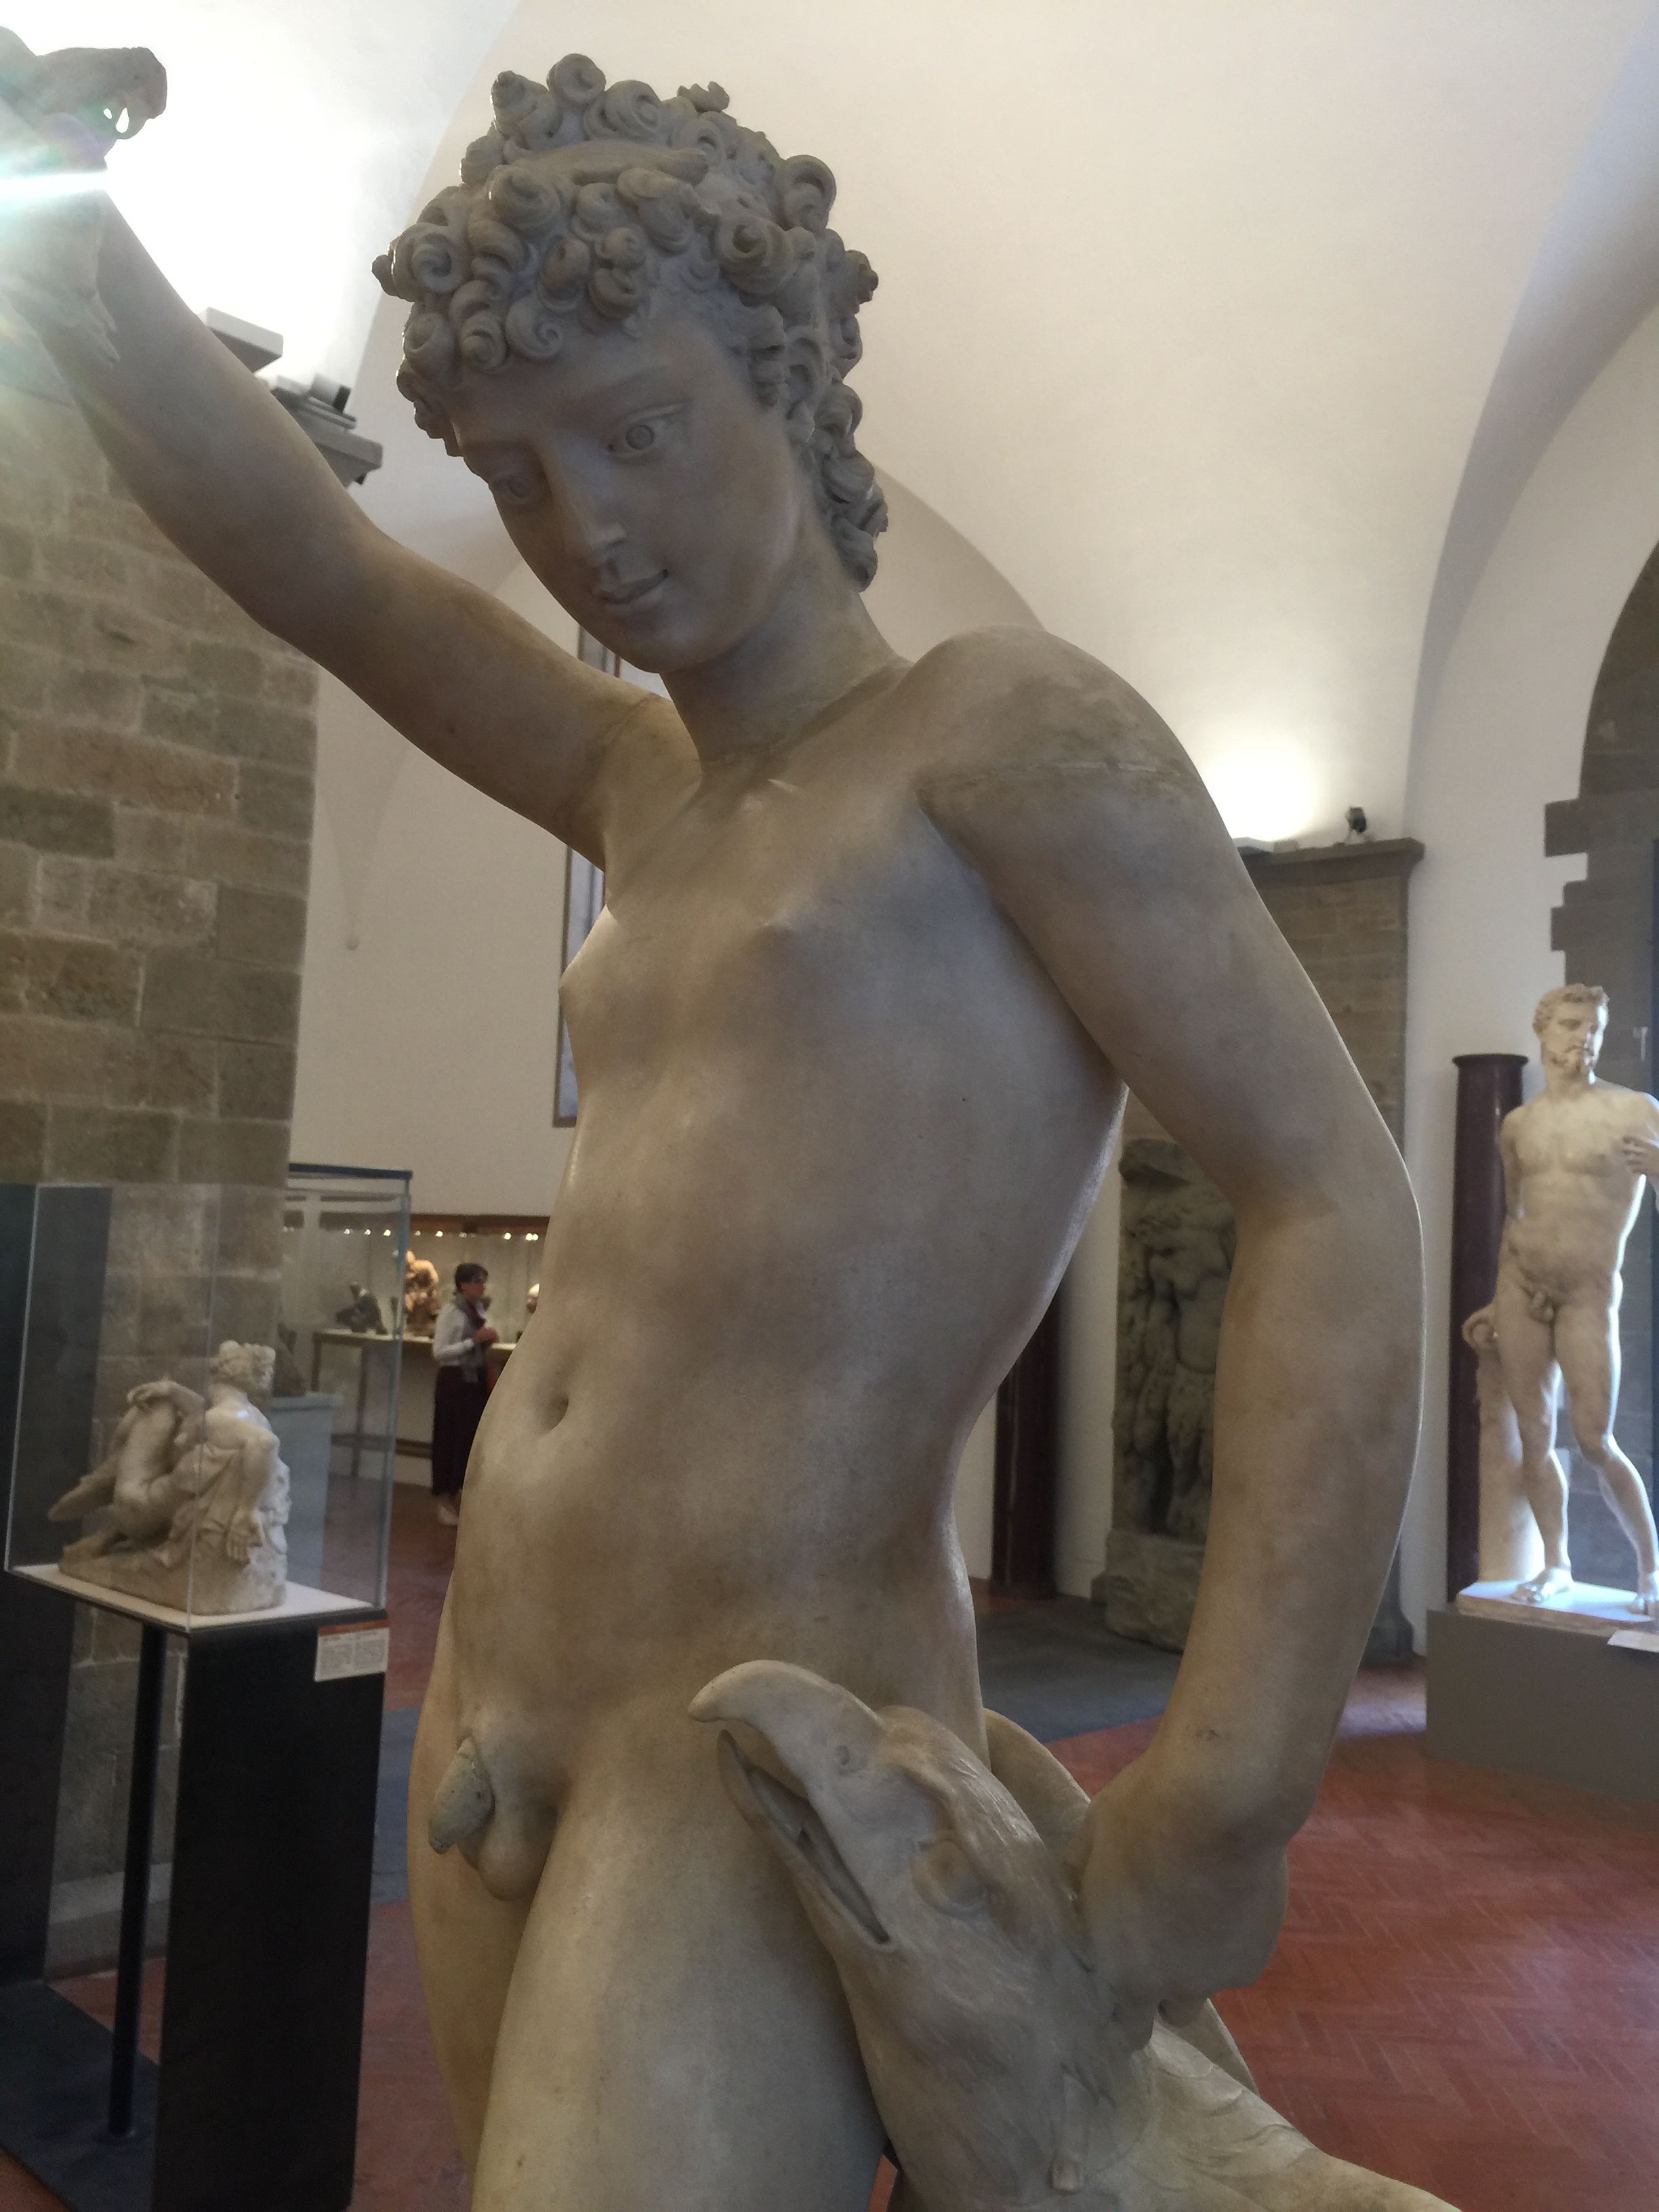 Ganymede , 1548-1550, remake of an antique torso in marble, by Benvenuto Cellini, Bargello Museum